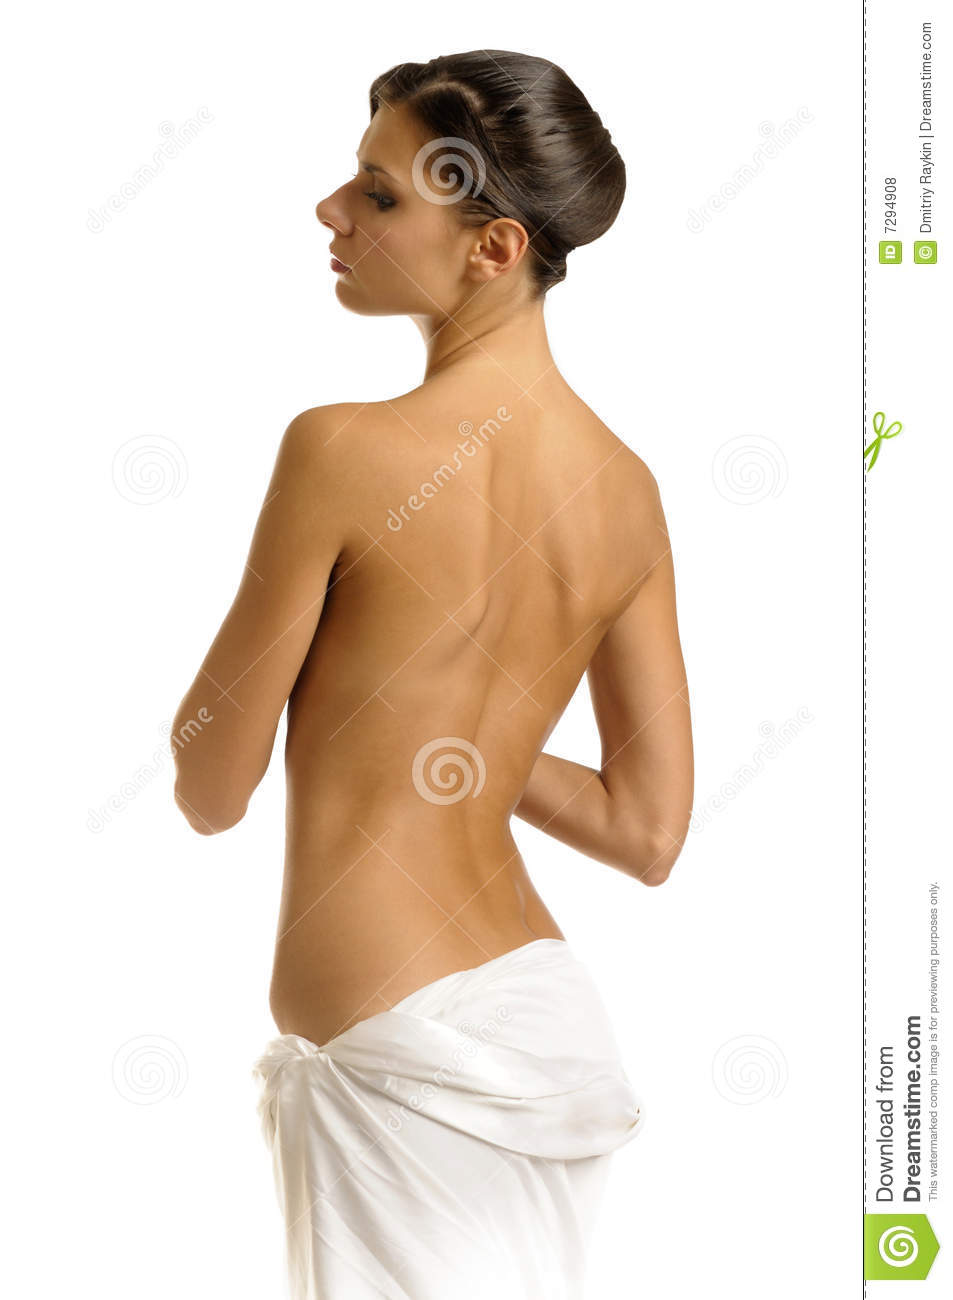 The girl in towel with naked back